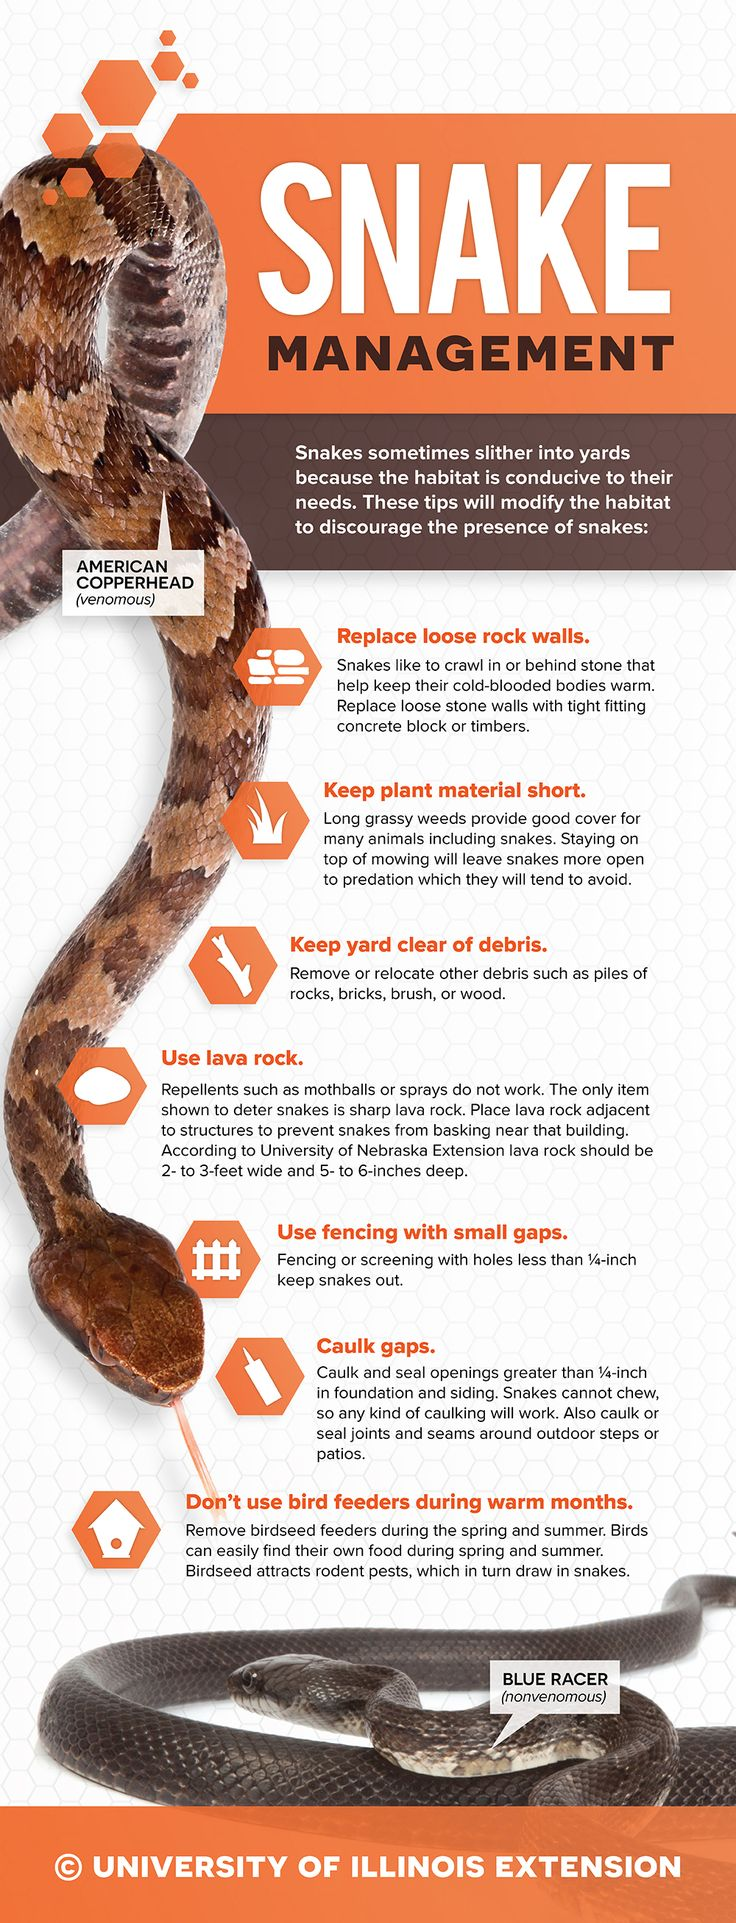 Snake Management Tips - How to keep snakes out of your backyard.